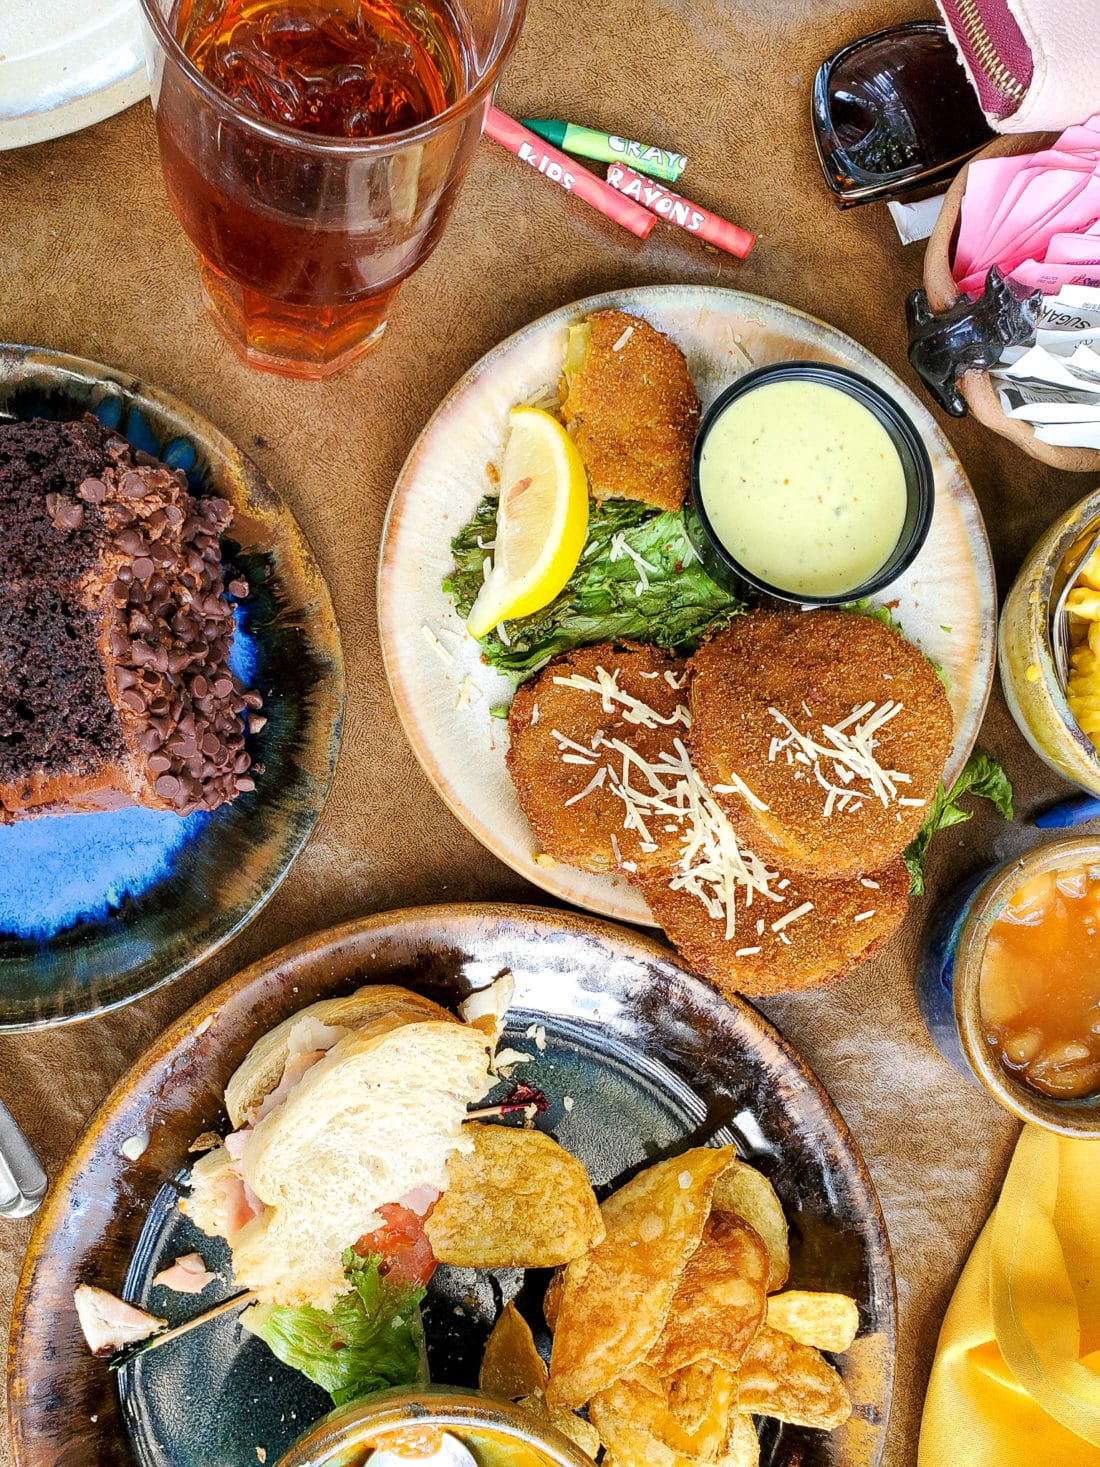 The Old Mill Pottery House Cafe & Grille Table Spread. The Pottery House Cafe serves freshly made sandwiches, salads, and hearty entrees on dishes created by our potters right next door. Read my full review which includes photos of this beautiful and delicious location in Pigeon Forge, TN.